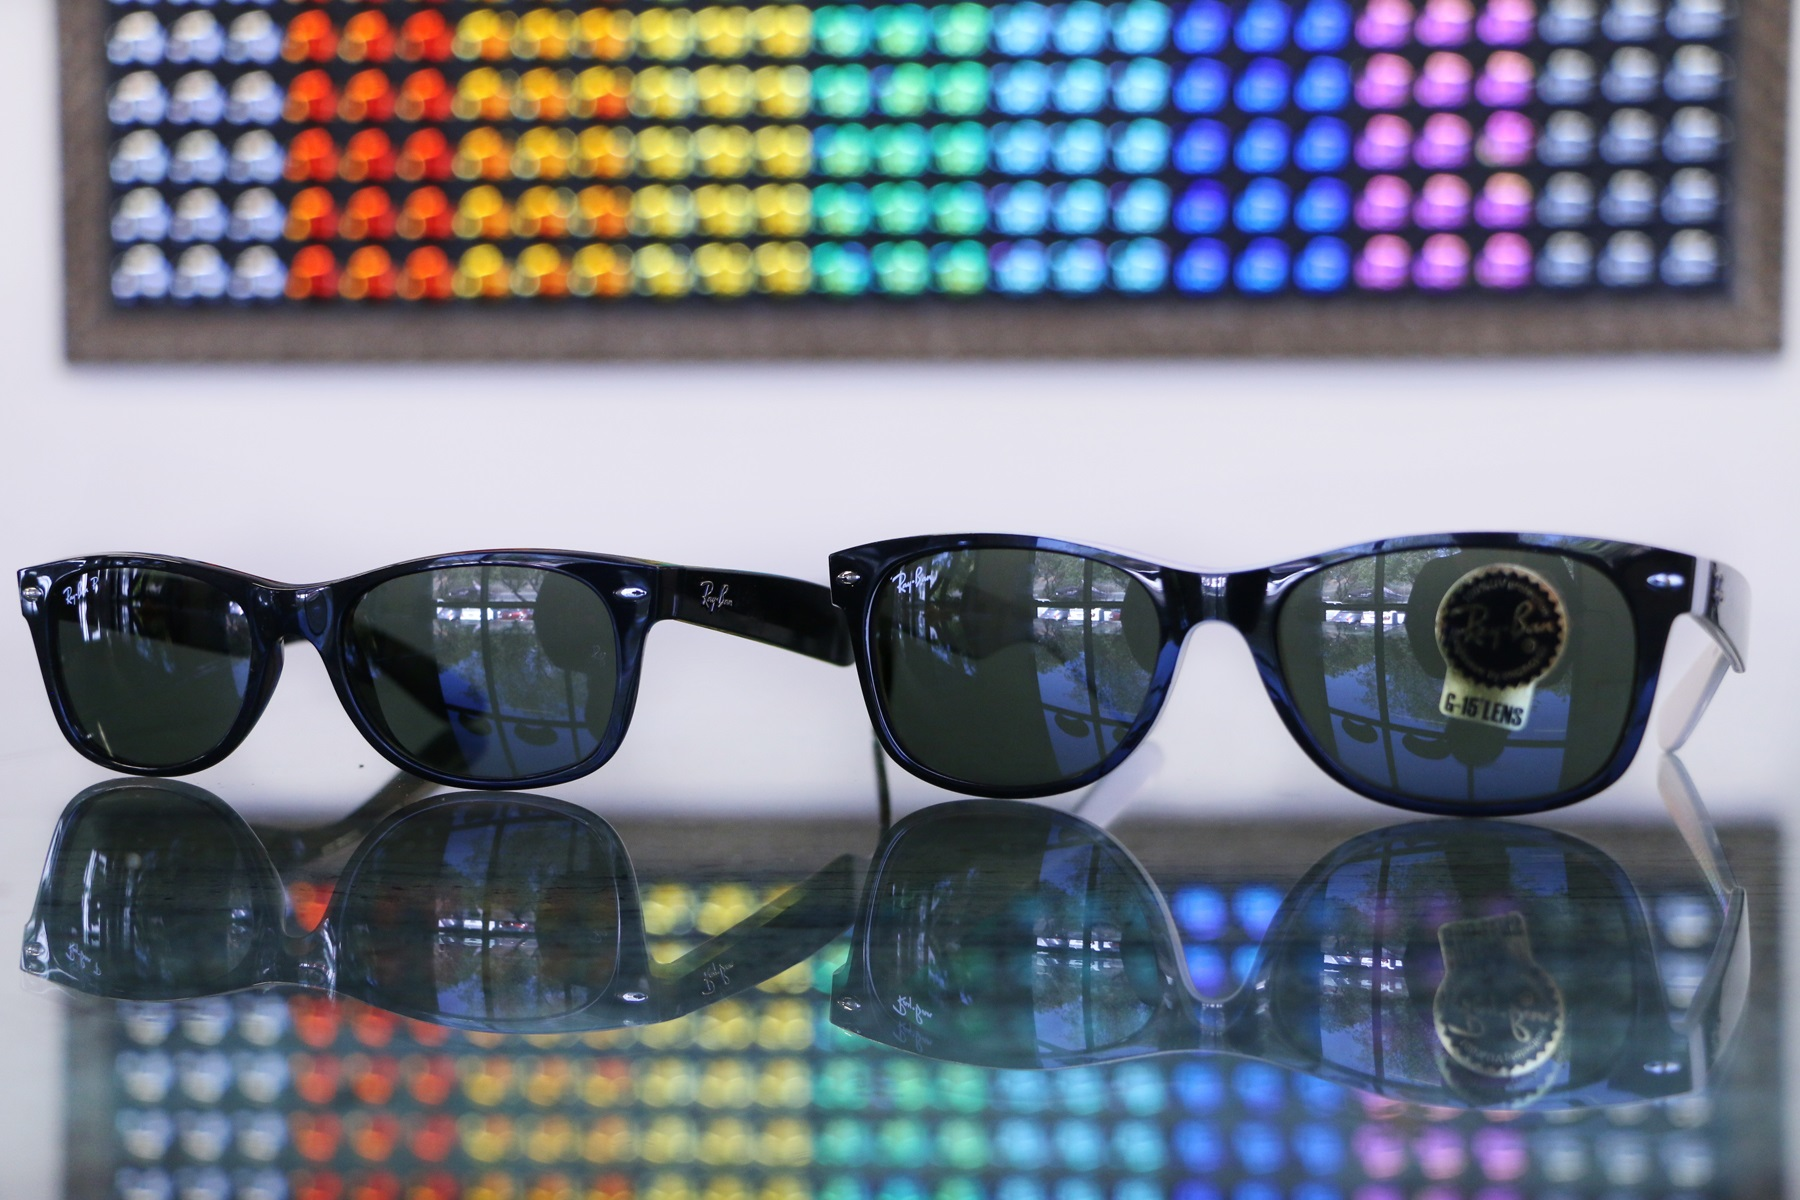 Ray Ban New Wayfarer 52 vs 55 eye size